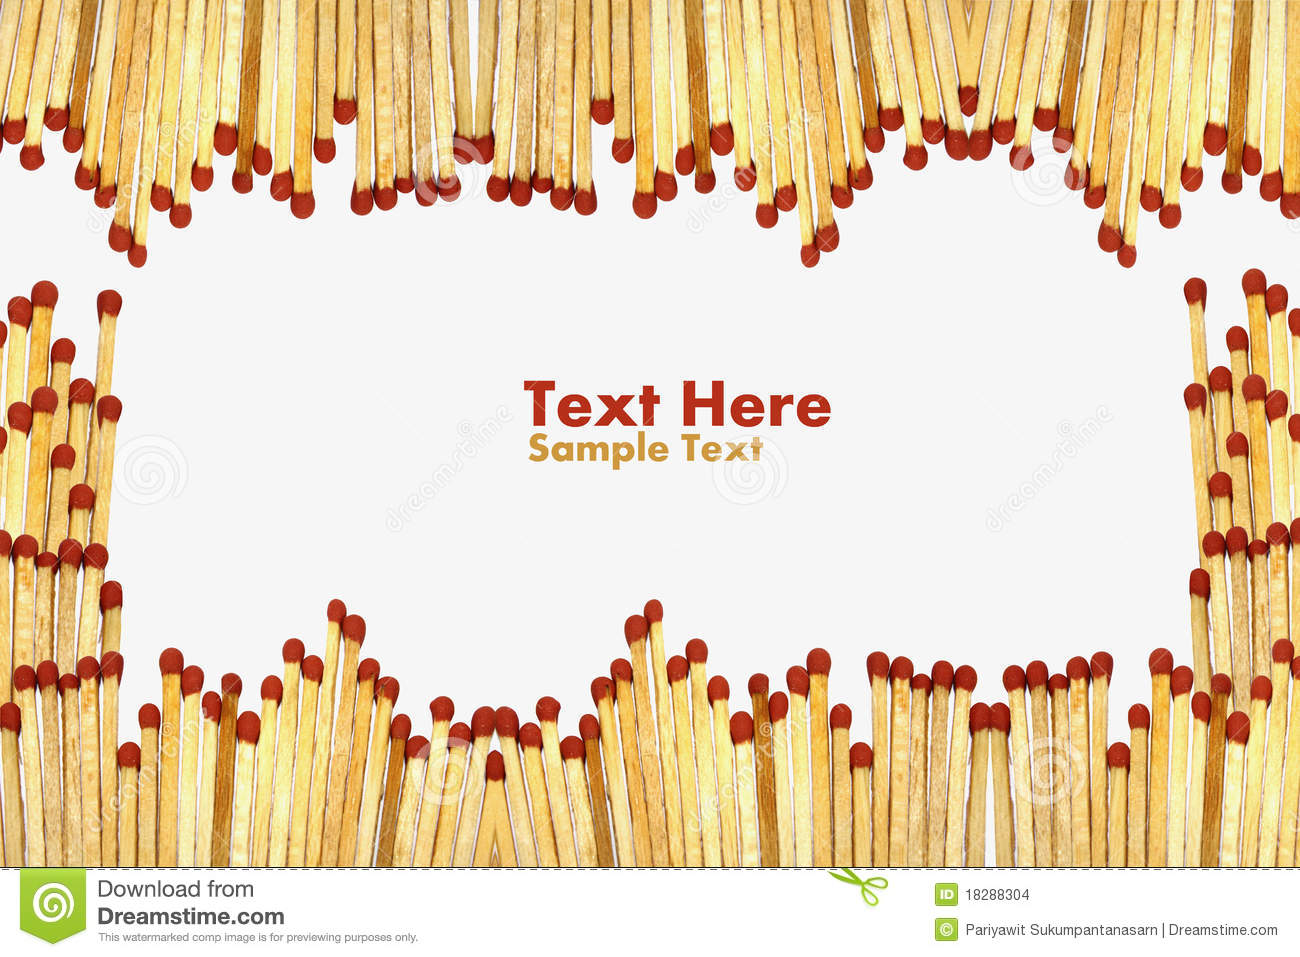 Matchs To Create A Frame On White Background Stock Photo - Image of ...